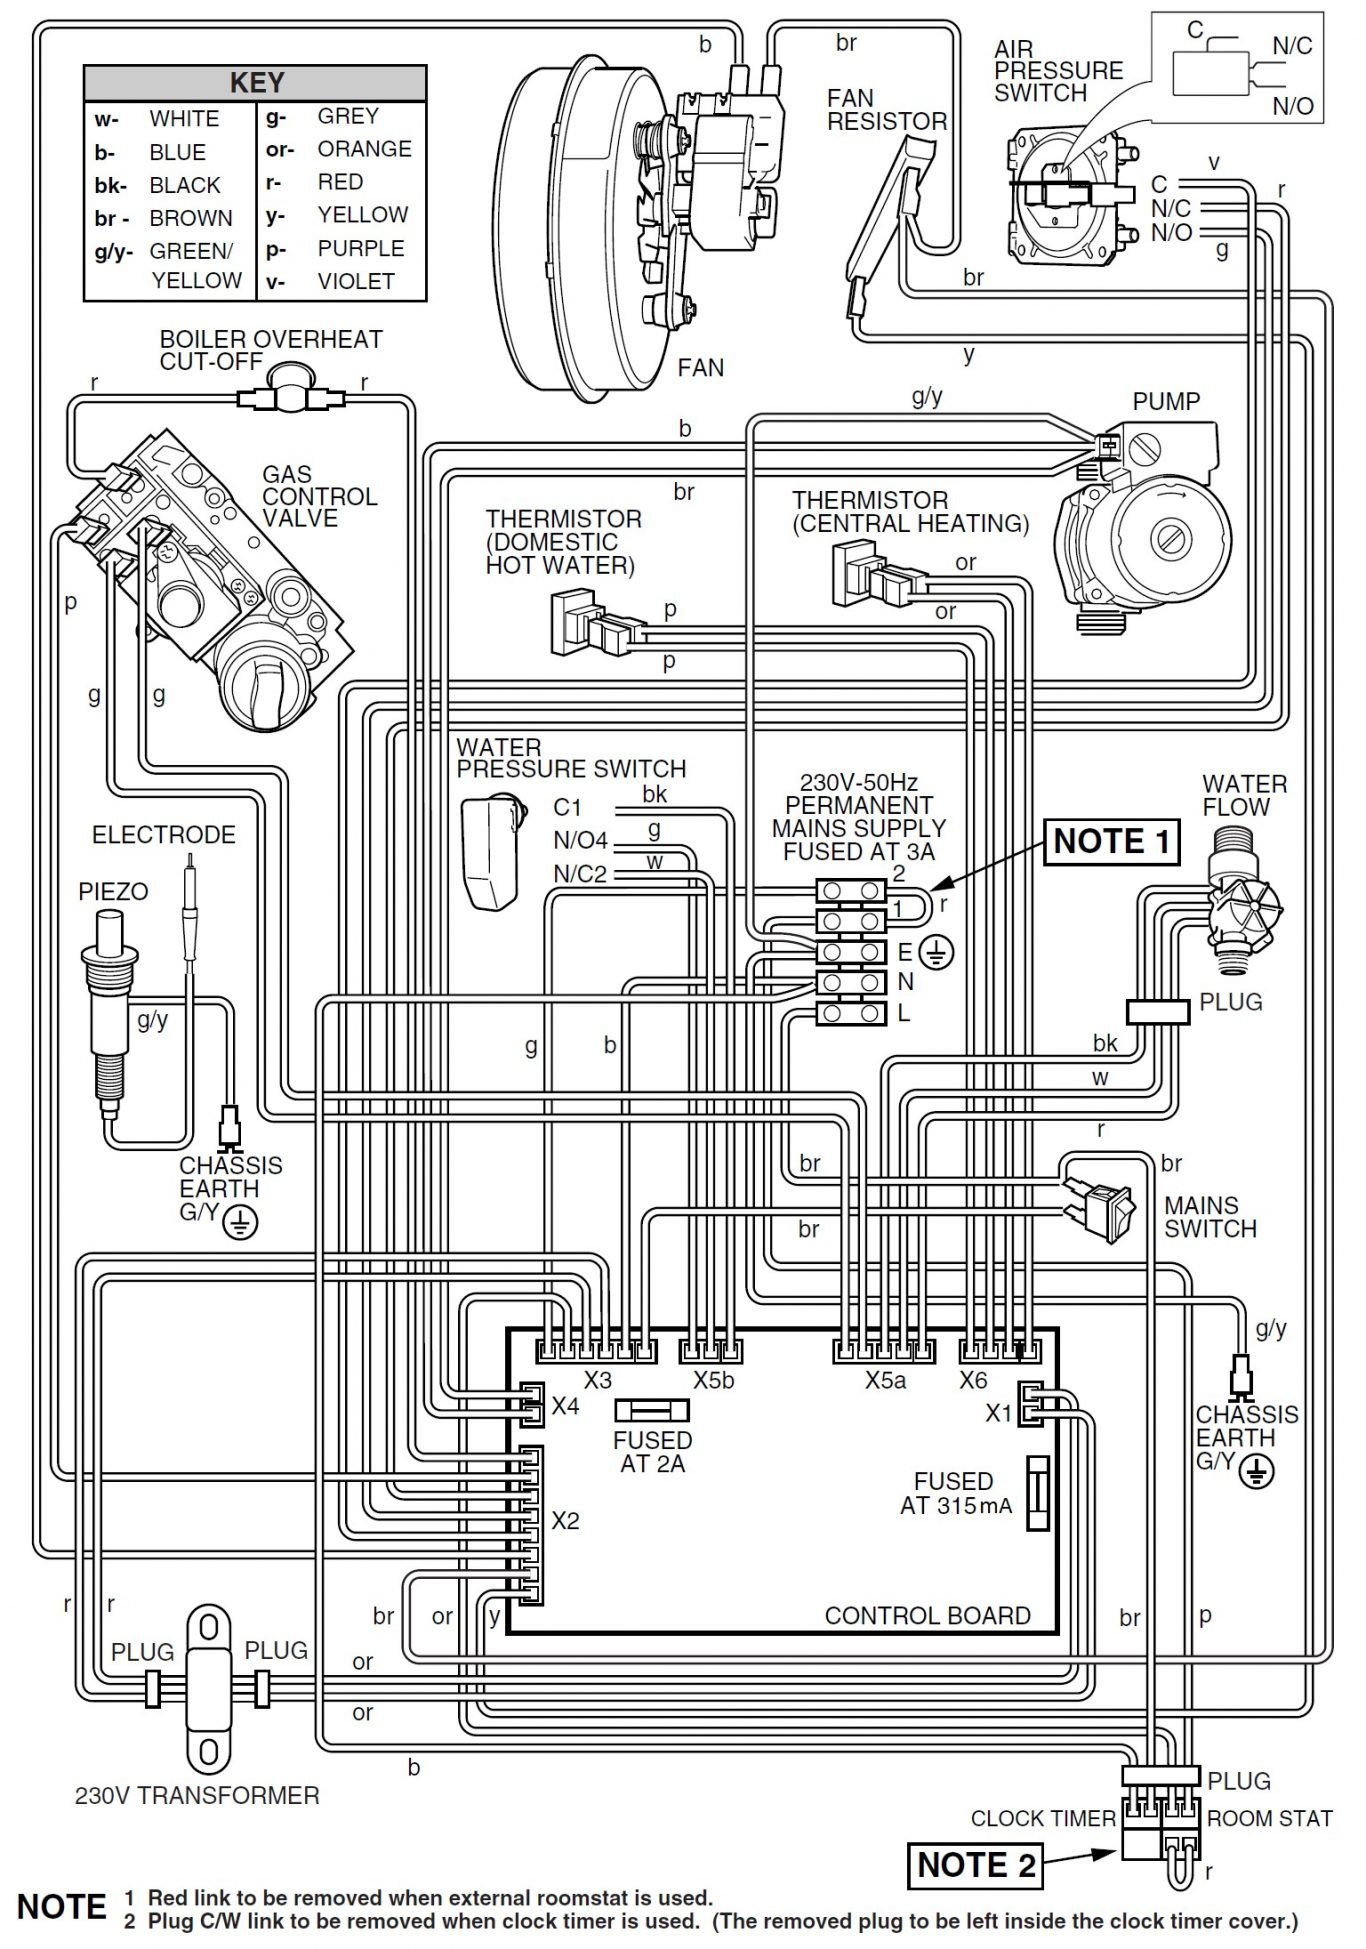 lanair waste oil heater wiring diagram Download-Lanair Waste Oil Heater Wiring Diagram Valid Beckett Oil Burner Parts Diagram Best Af Afg Oil 14-a